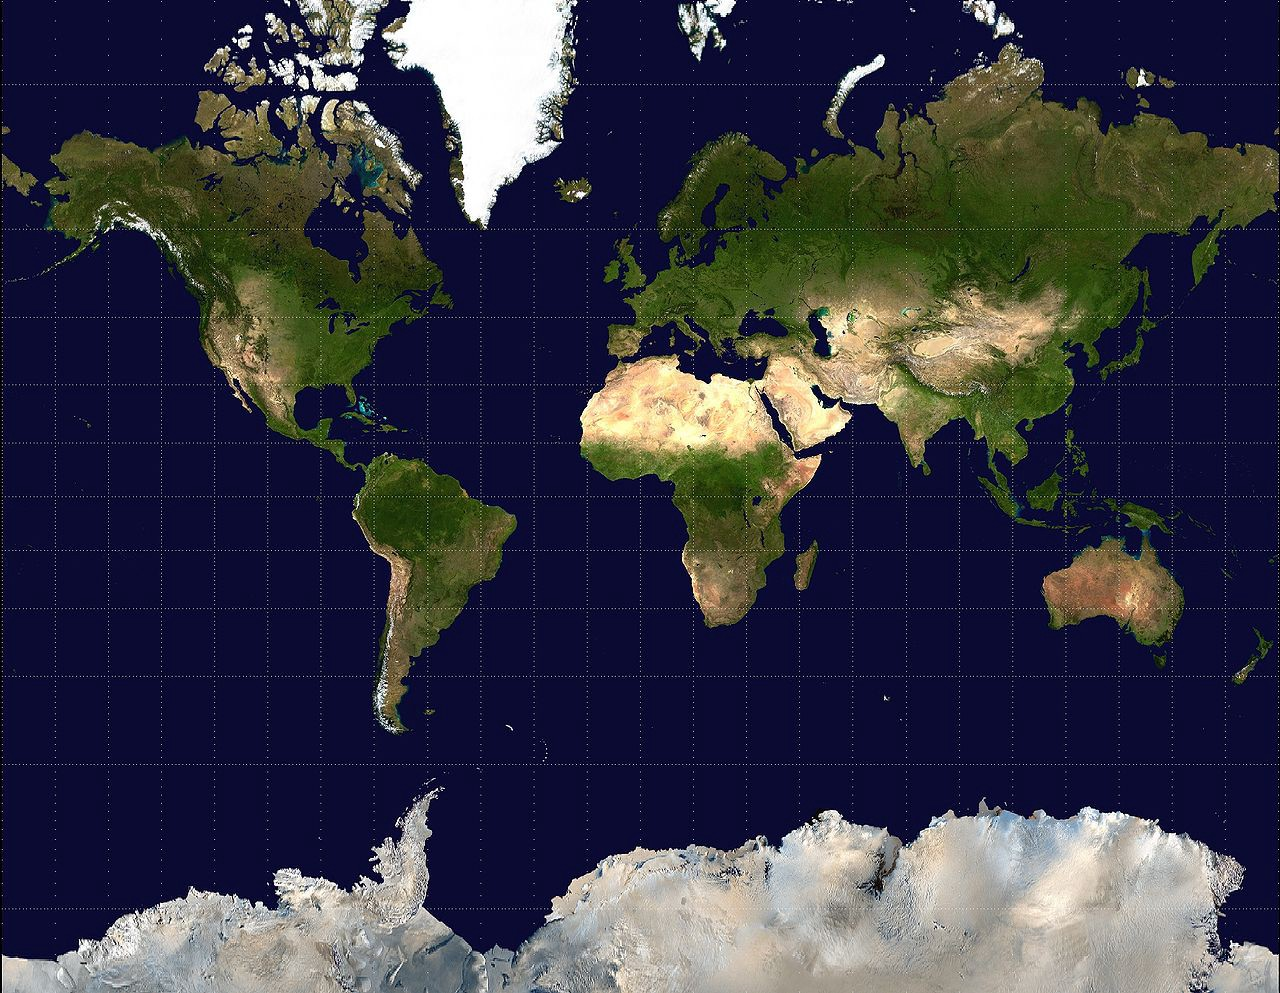 A rectangular world map projection showing physical landforms. America lies on the left hand side, while Europe, Africa, Asia and Australia on the right. Antarctica is partially shown at the bottom. Both the northernmost and southernmost section are massively distorted to gigantic sizes.